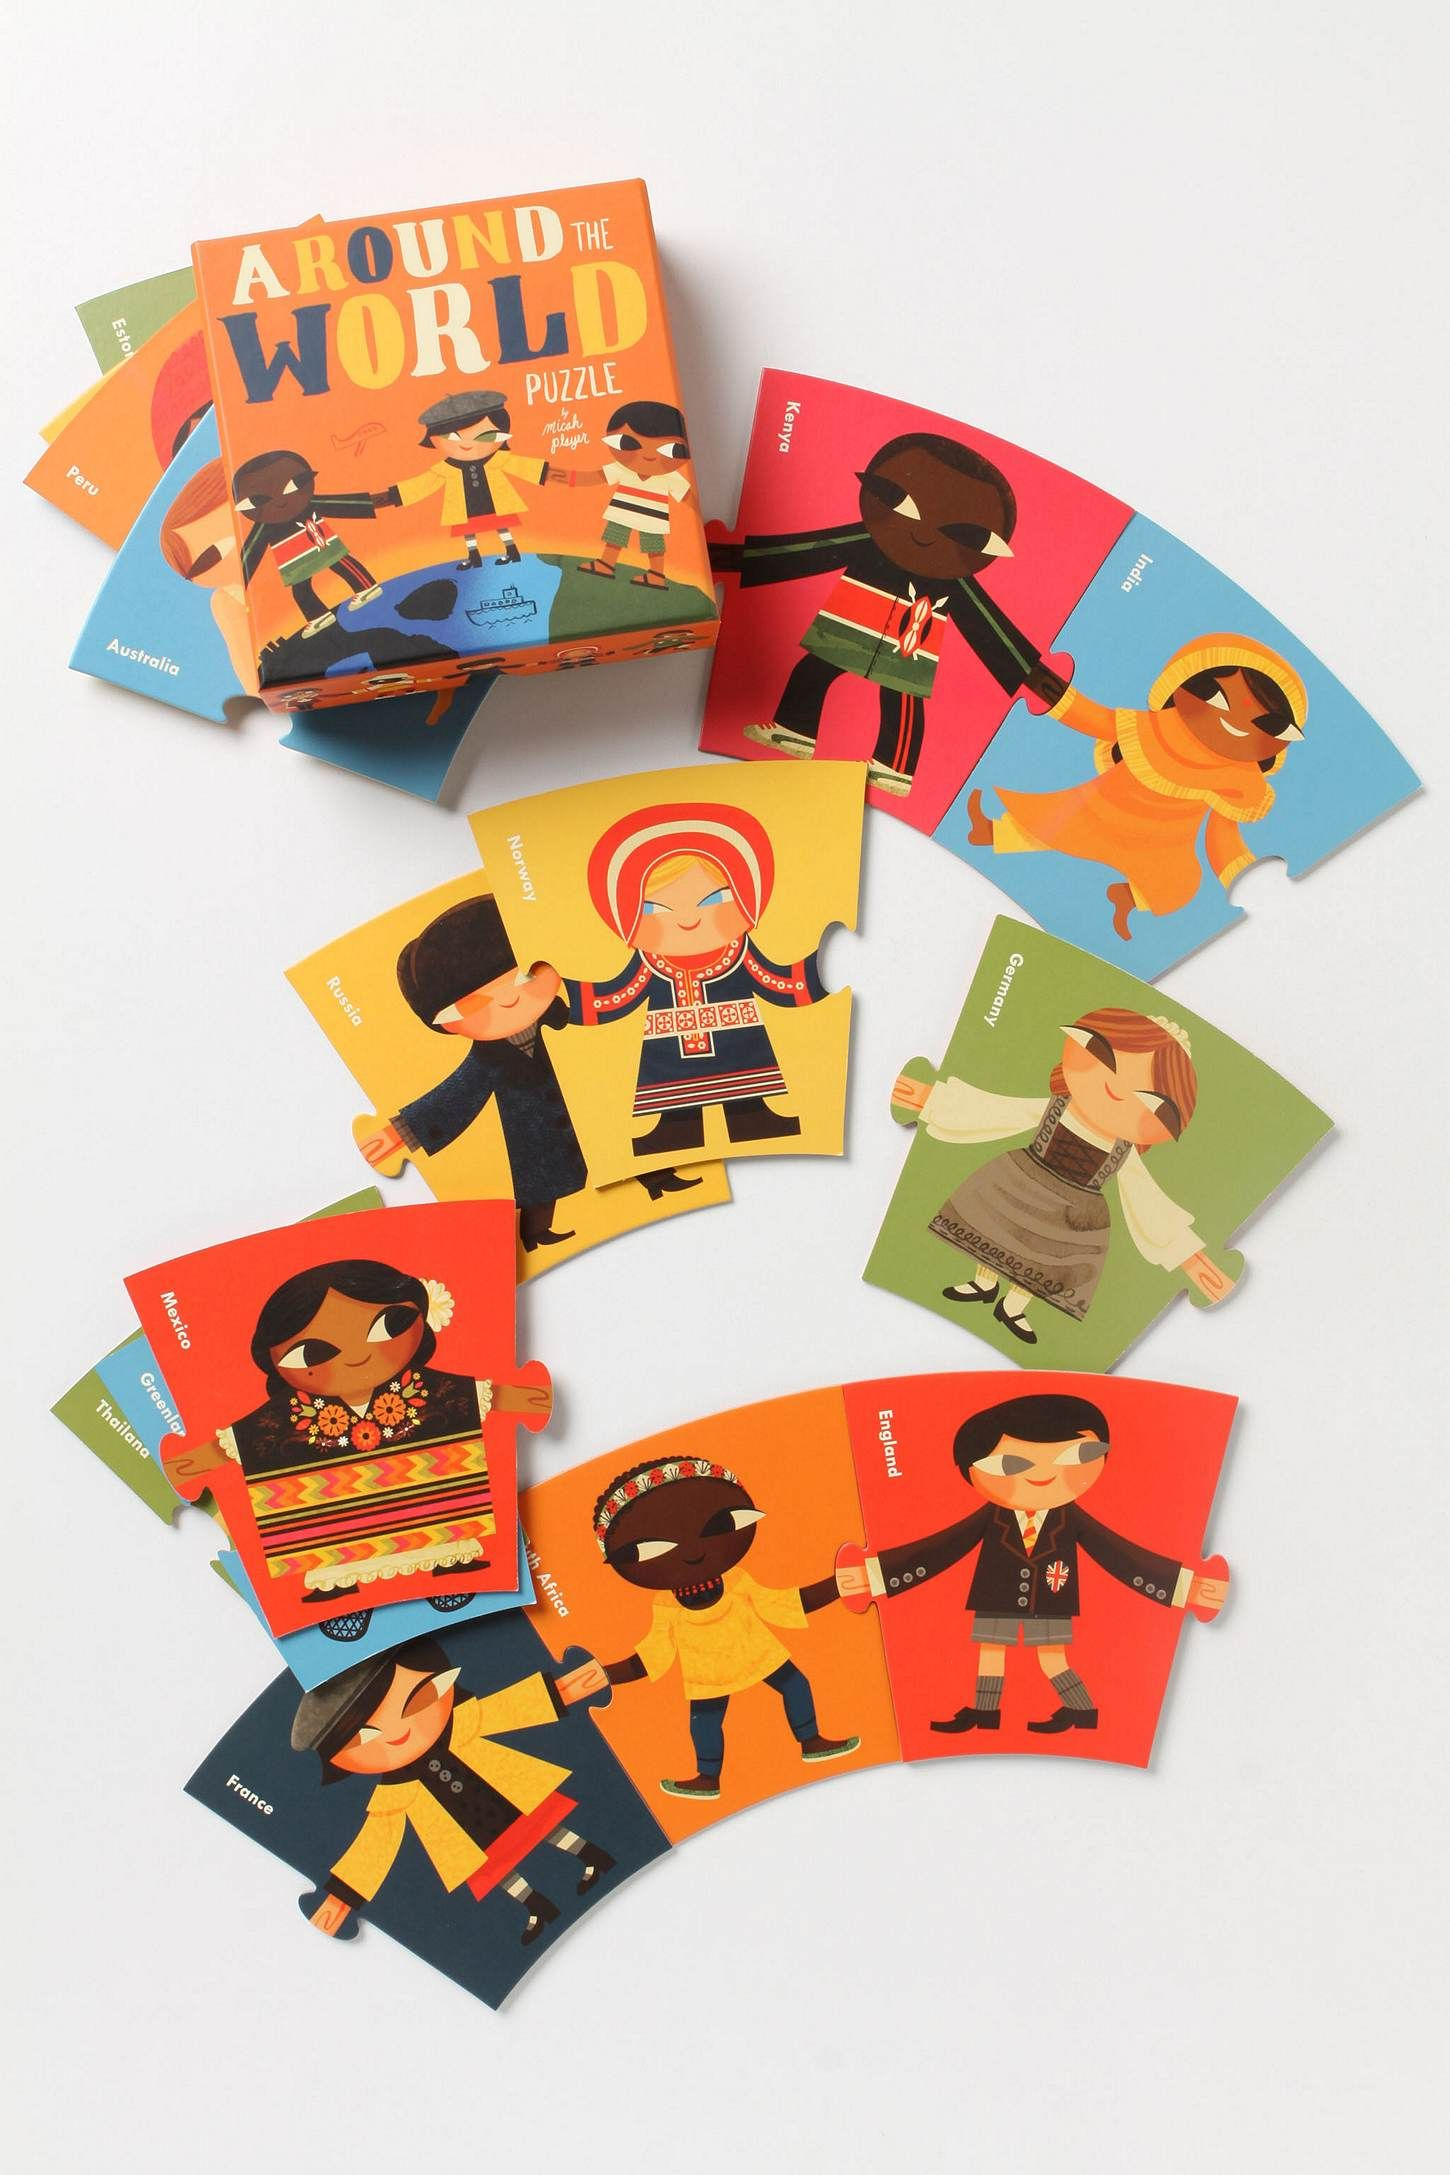 Around The World Puzzle World puzzle, Gifts for kids